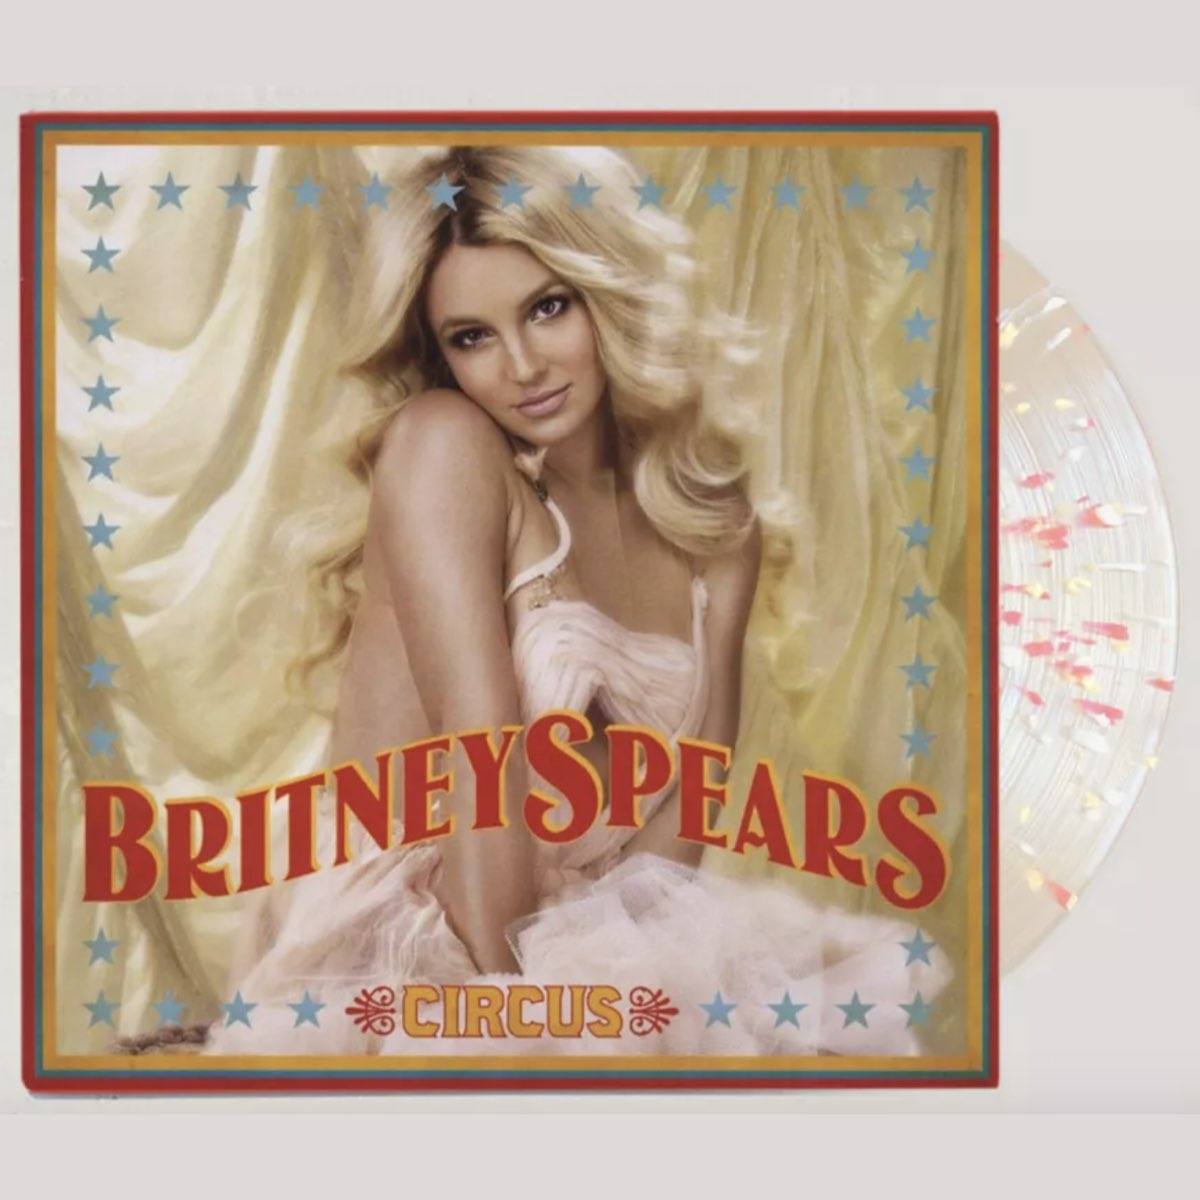 Britney Spears - Circus [Urban Outfitters]